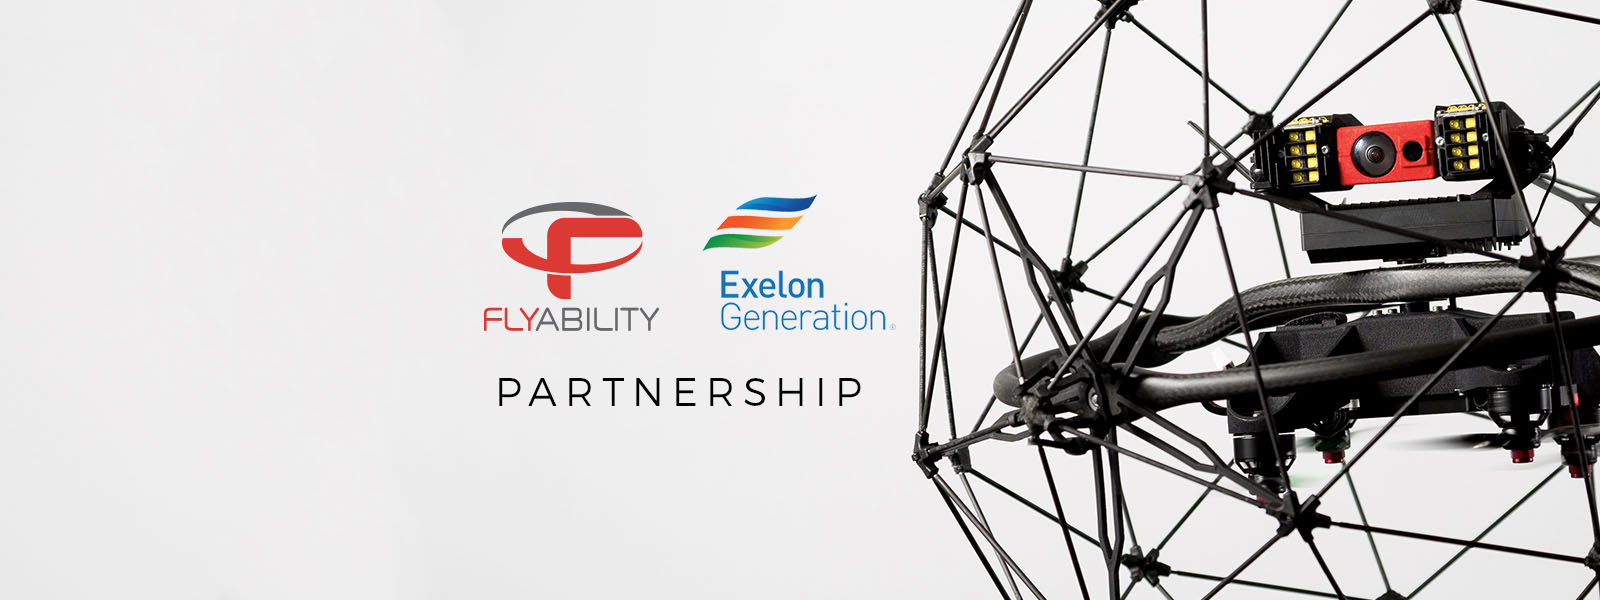 Exelon AeroLabs Becomes an Authorized Reseller of the Flyability Elios